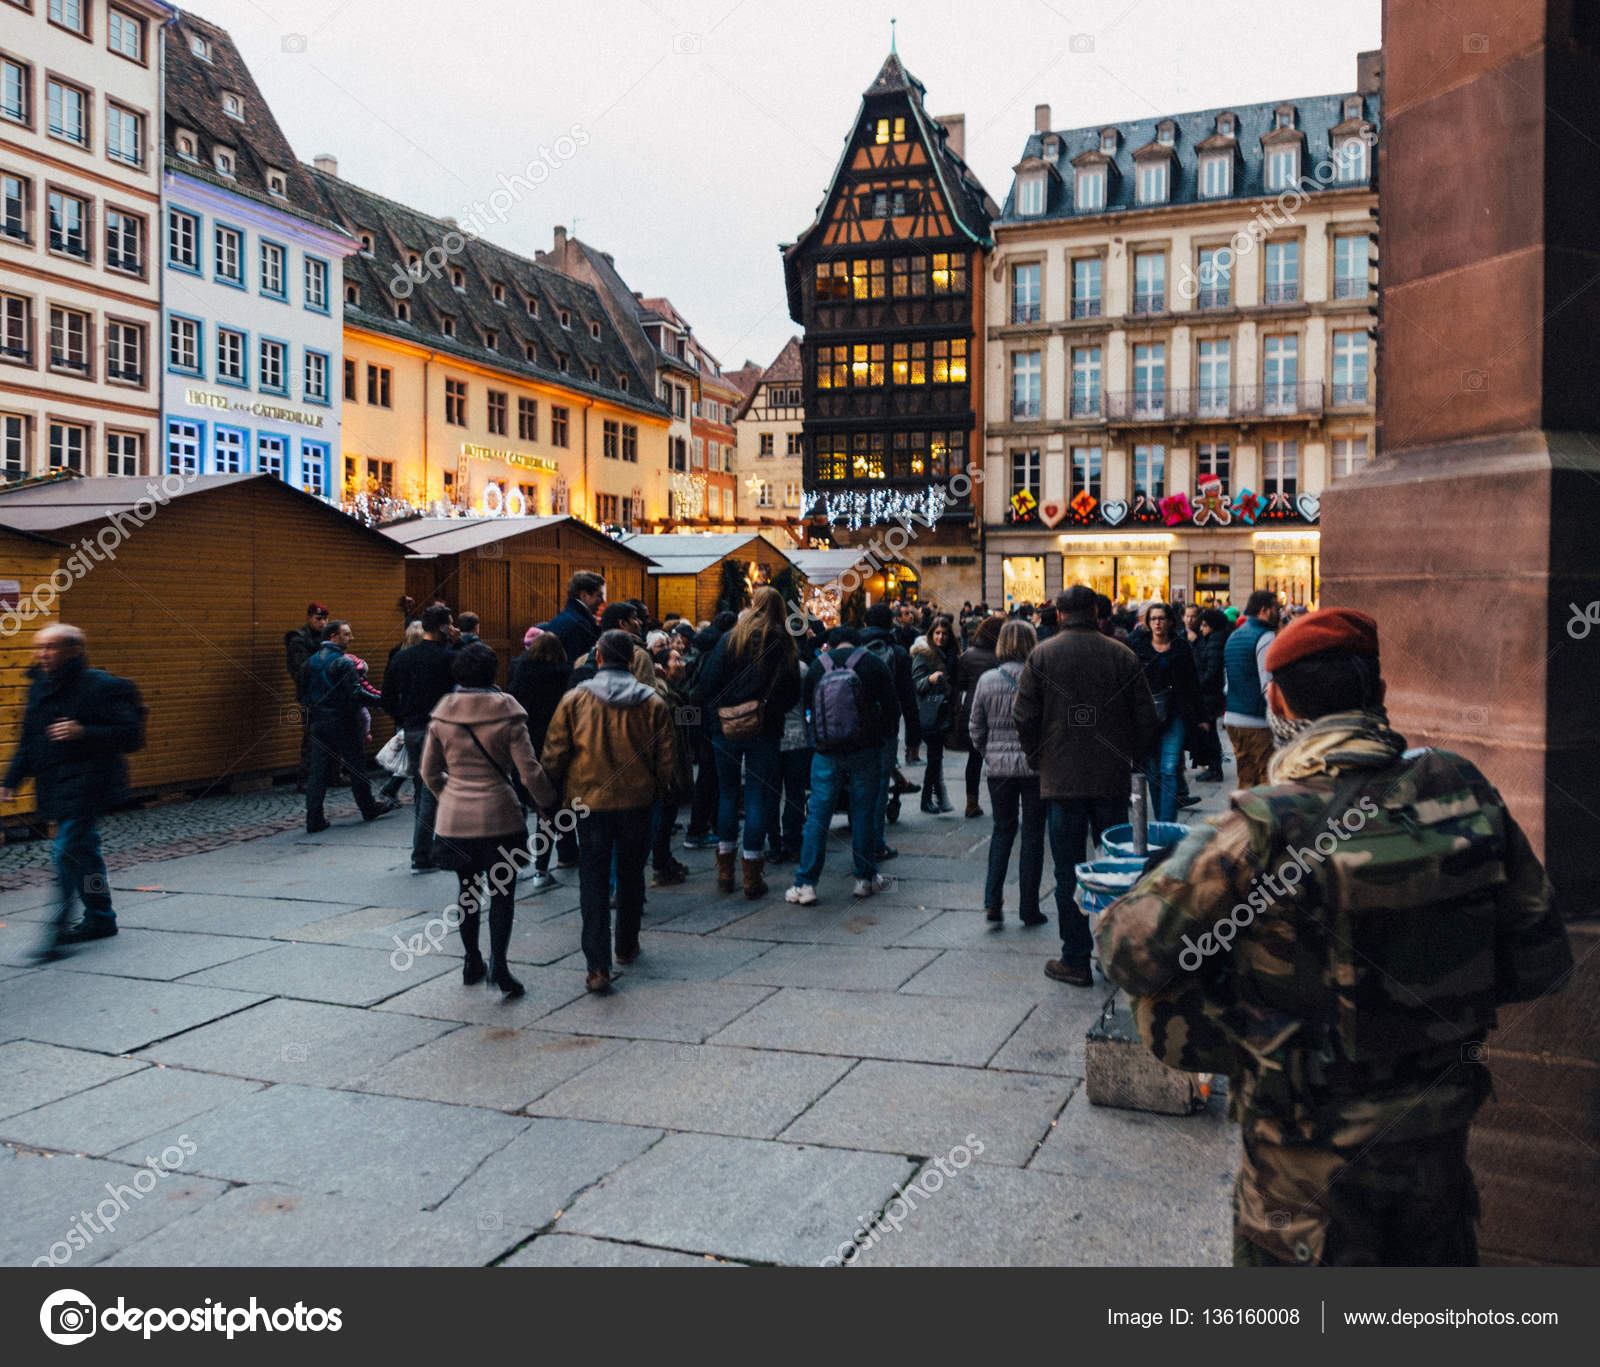 police officers surveilling place cathedrale neon christmas decorations christmas market stock photo - Police Officer Christmas Decorations